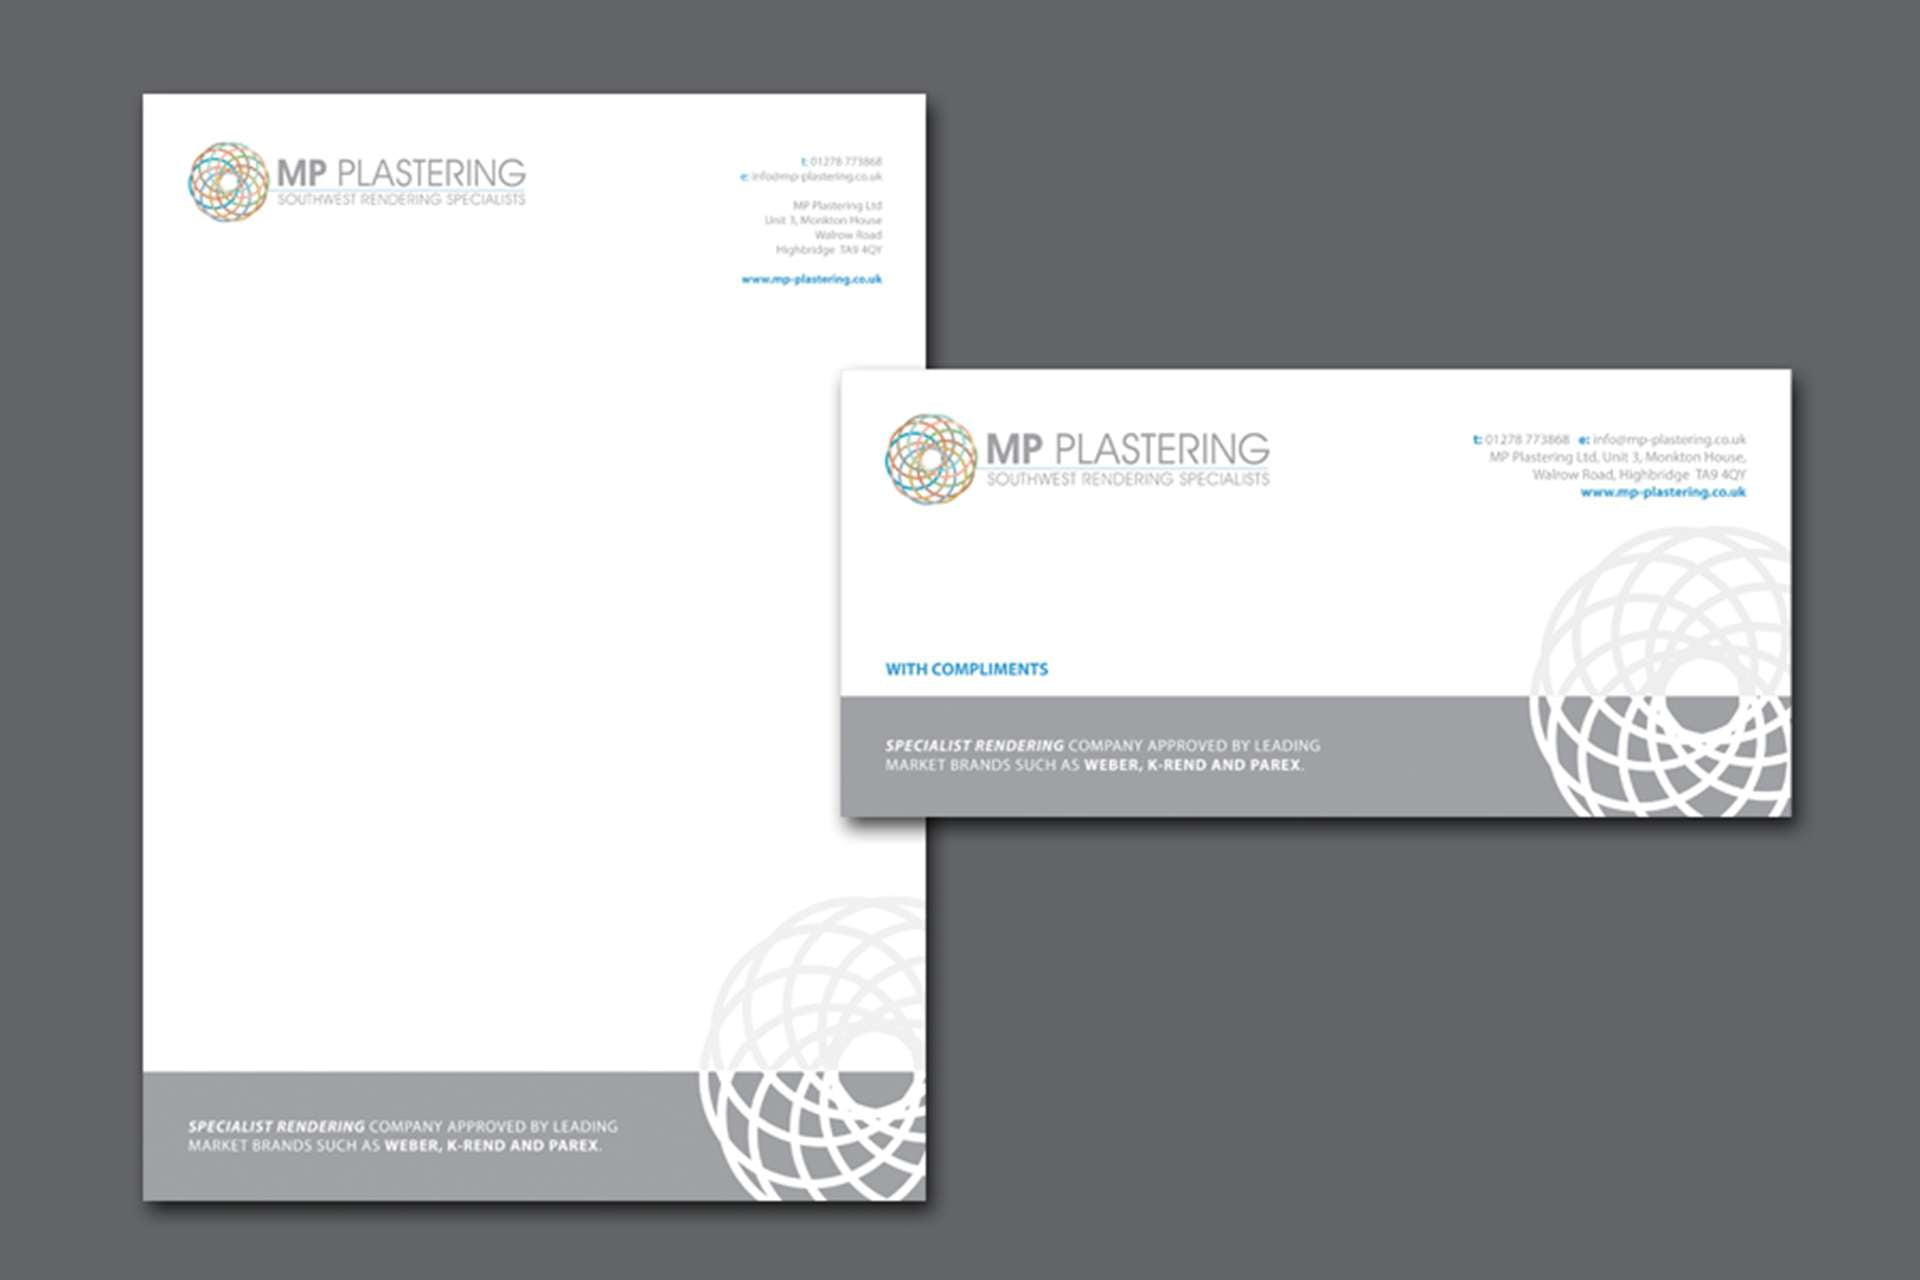 Stationery design for MP Plastering in Highbridge, Somerset